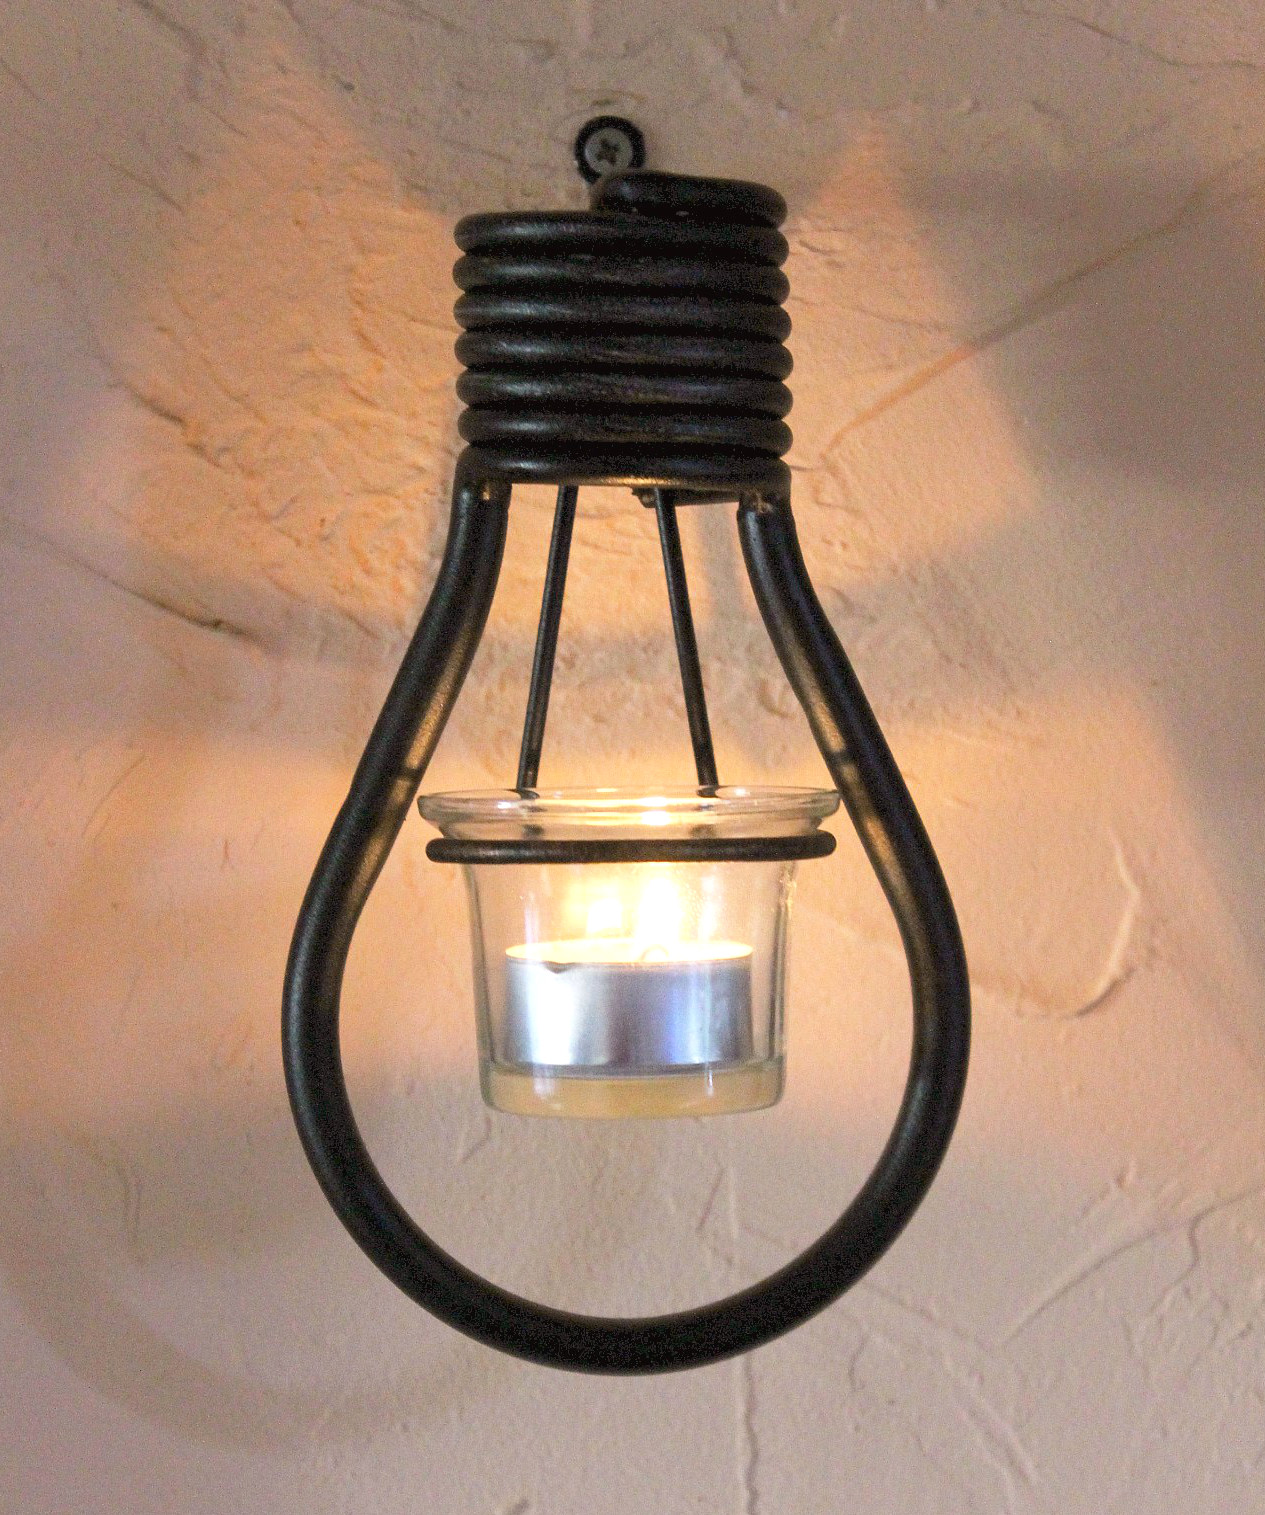 Wall Hung Tea Light Holders : Wall mounted tea light holder Bulbs 19 cm Tealight holder From Metal Wall light eBay